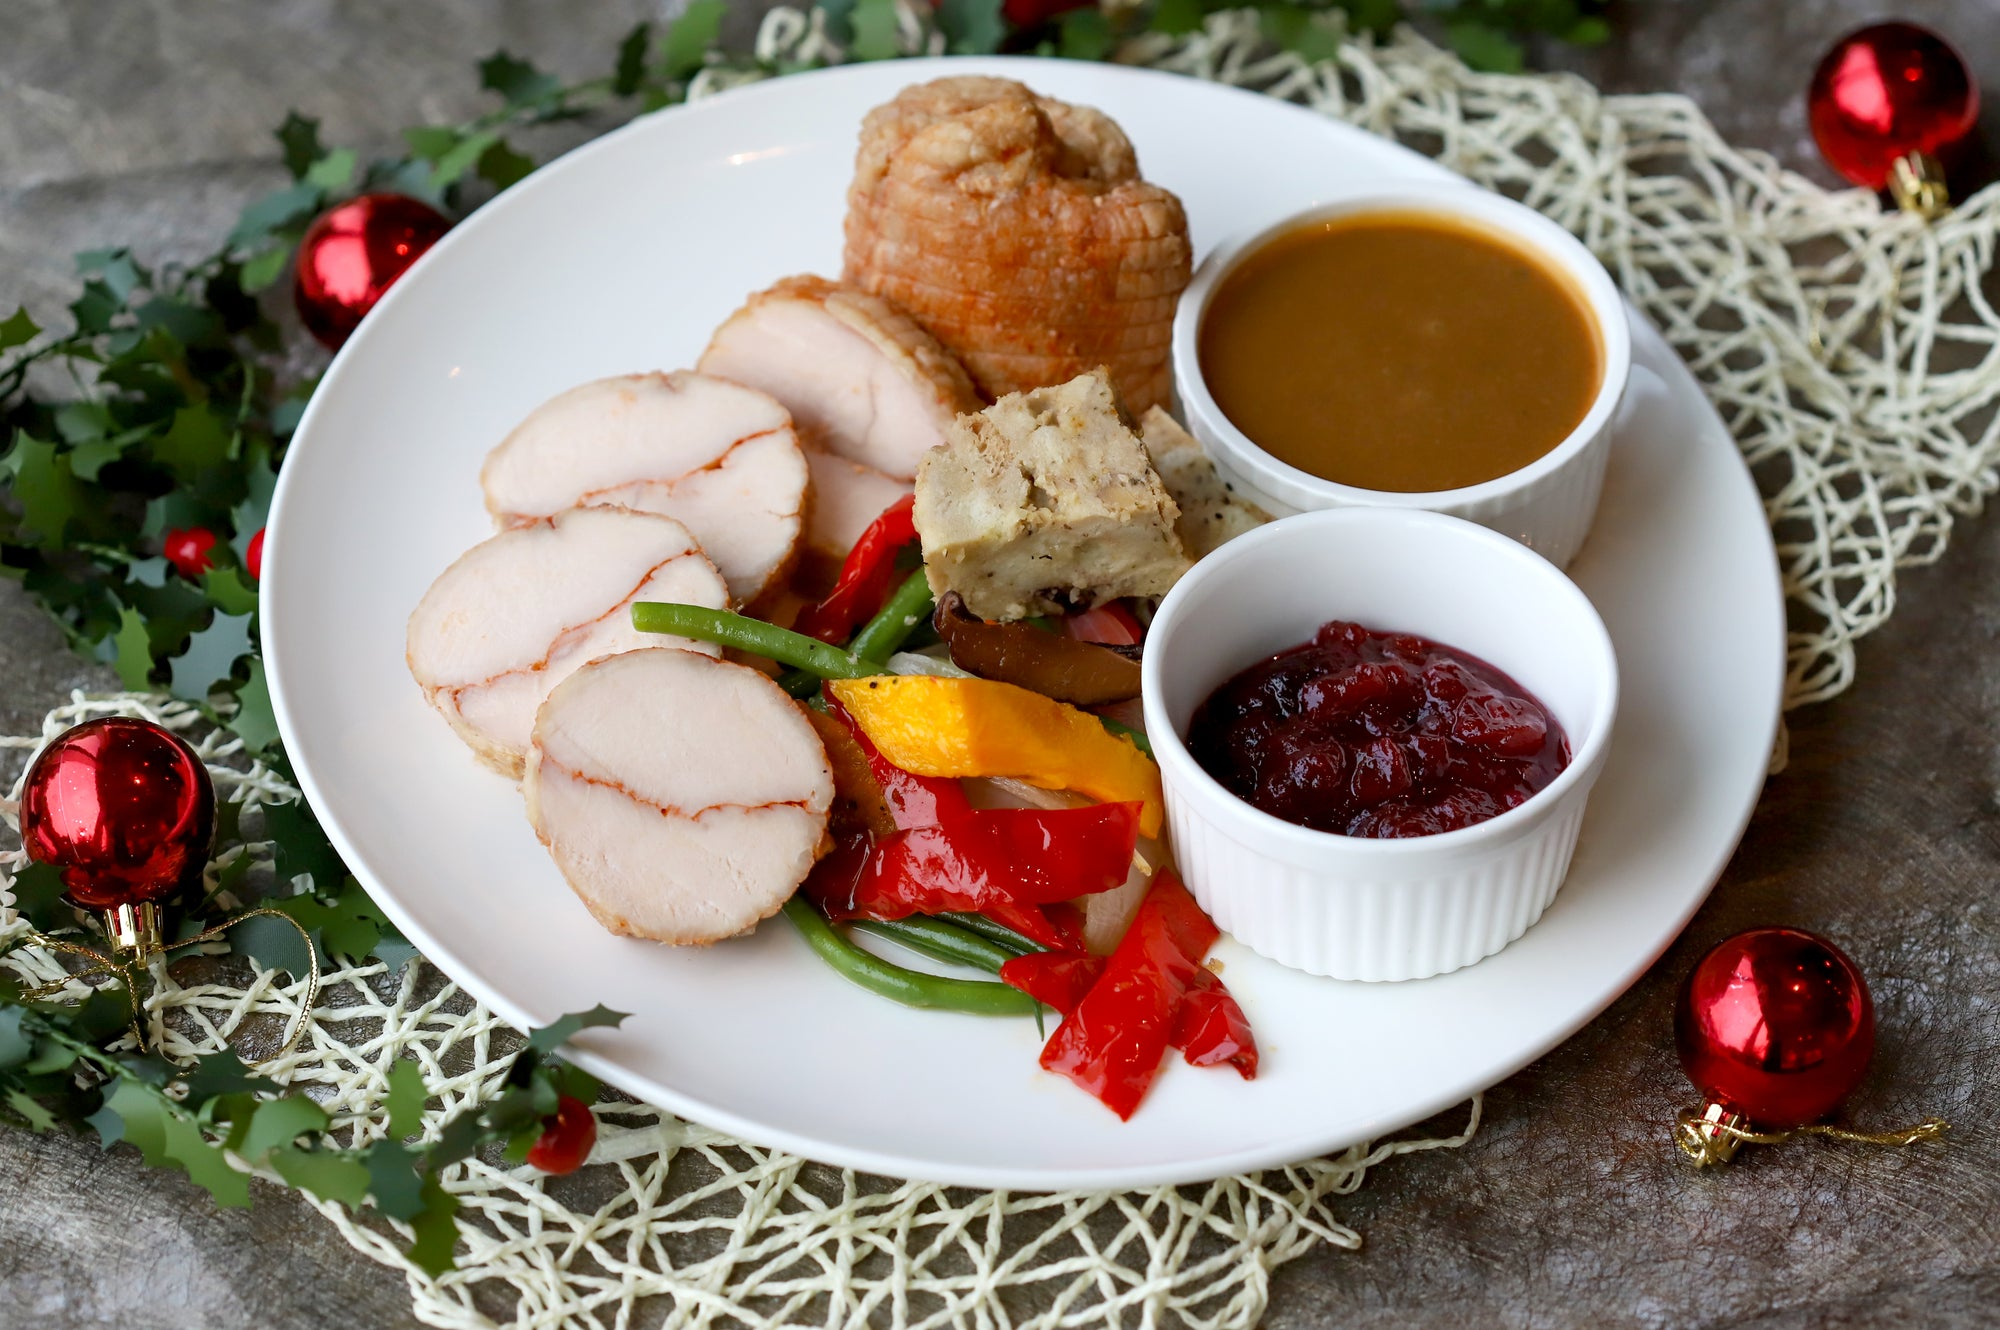 47. LOIN OF TURKEY BREAST WITH SWEET CORN BREAD STUFFING, CRANBERRY & BROWN SAUCES, WINTER VEGETABLES - Swiss Butchery | A Cut Above | Premium Butchers Since 1994